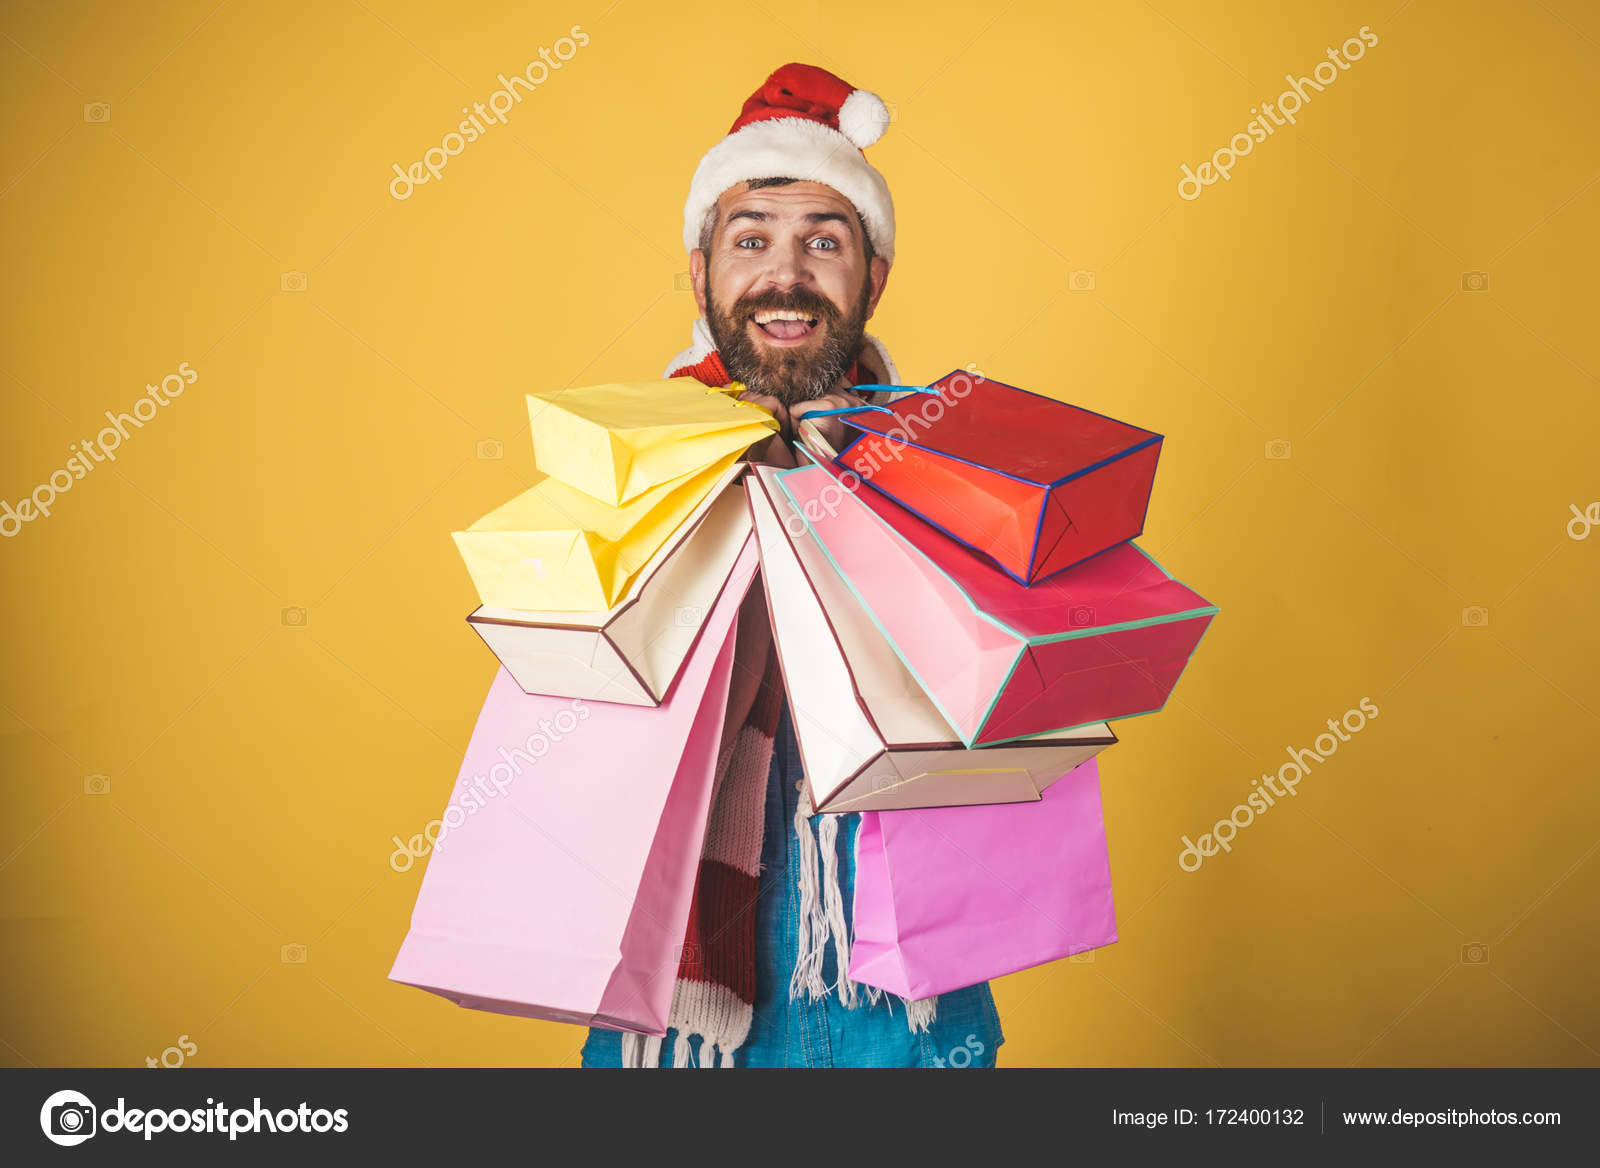 386d5019f24a7 Christmas man hold shopping bags on yellow background. Hipster shopper smile  in santa hat and scarf. Black friday sale concept. Winter holidays  celebration.